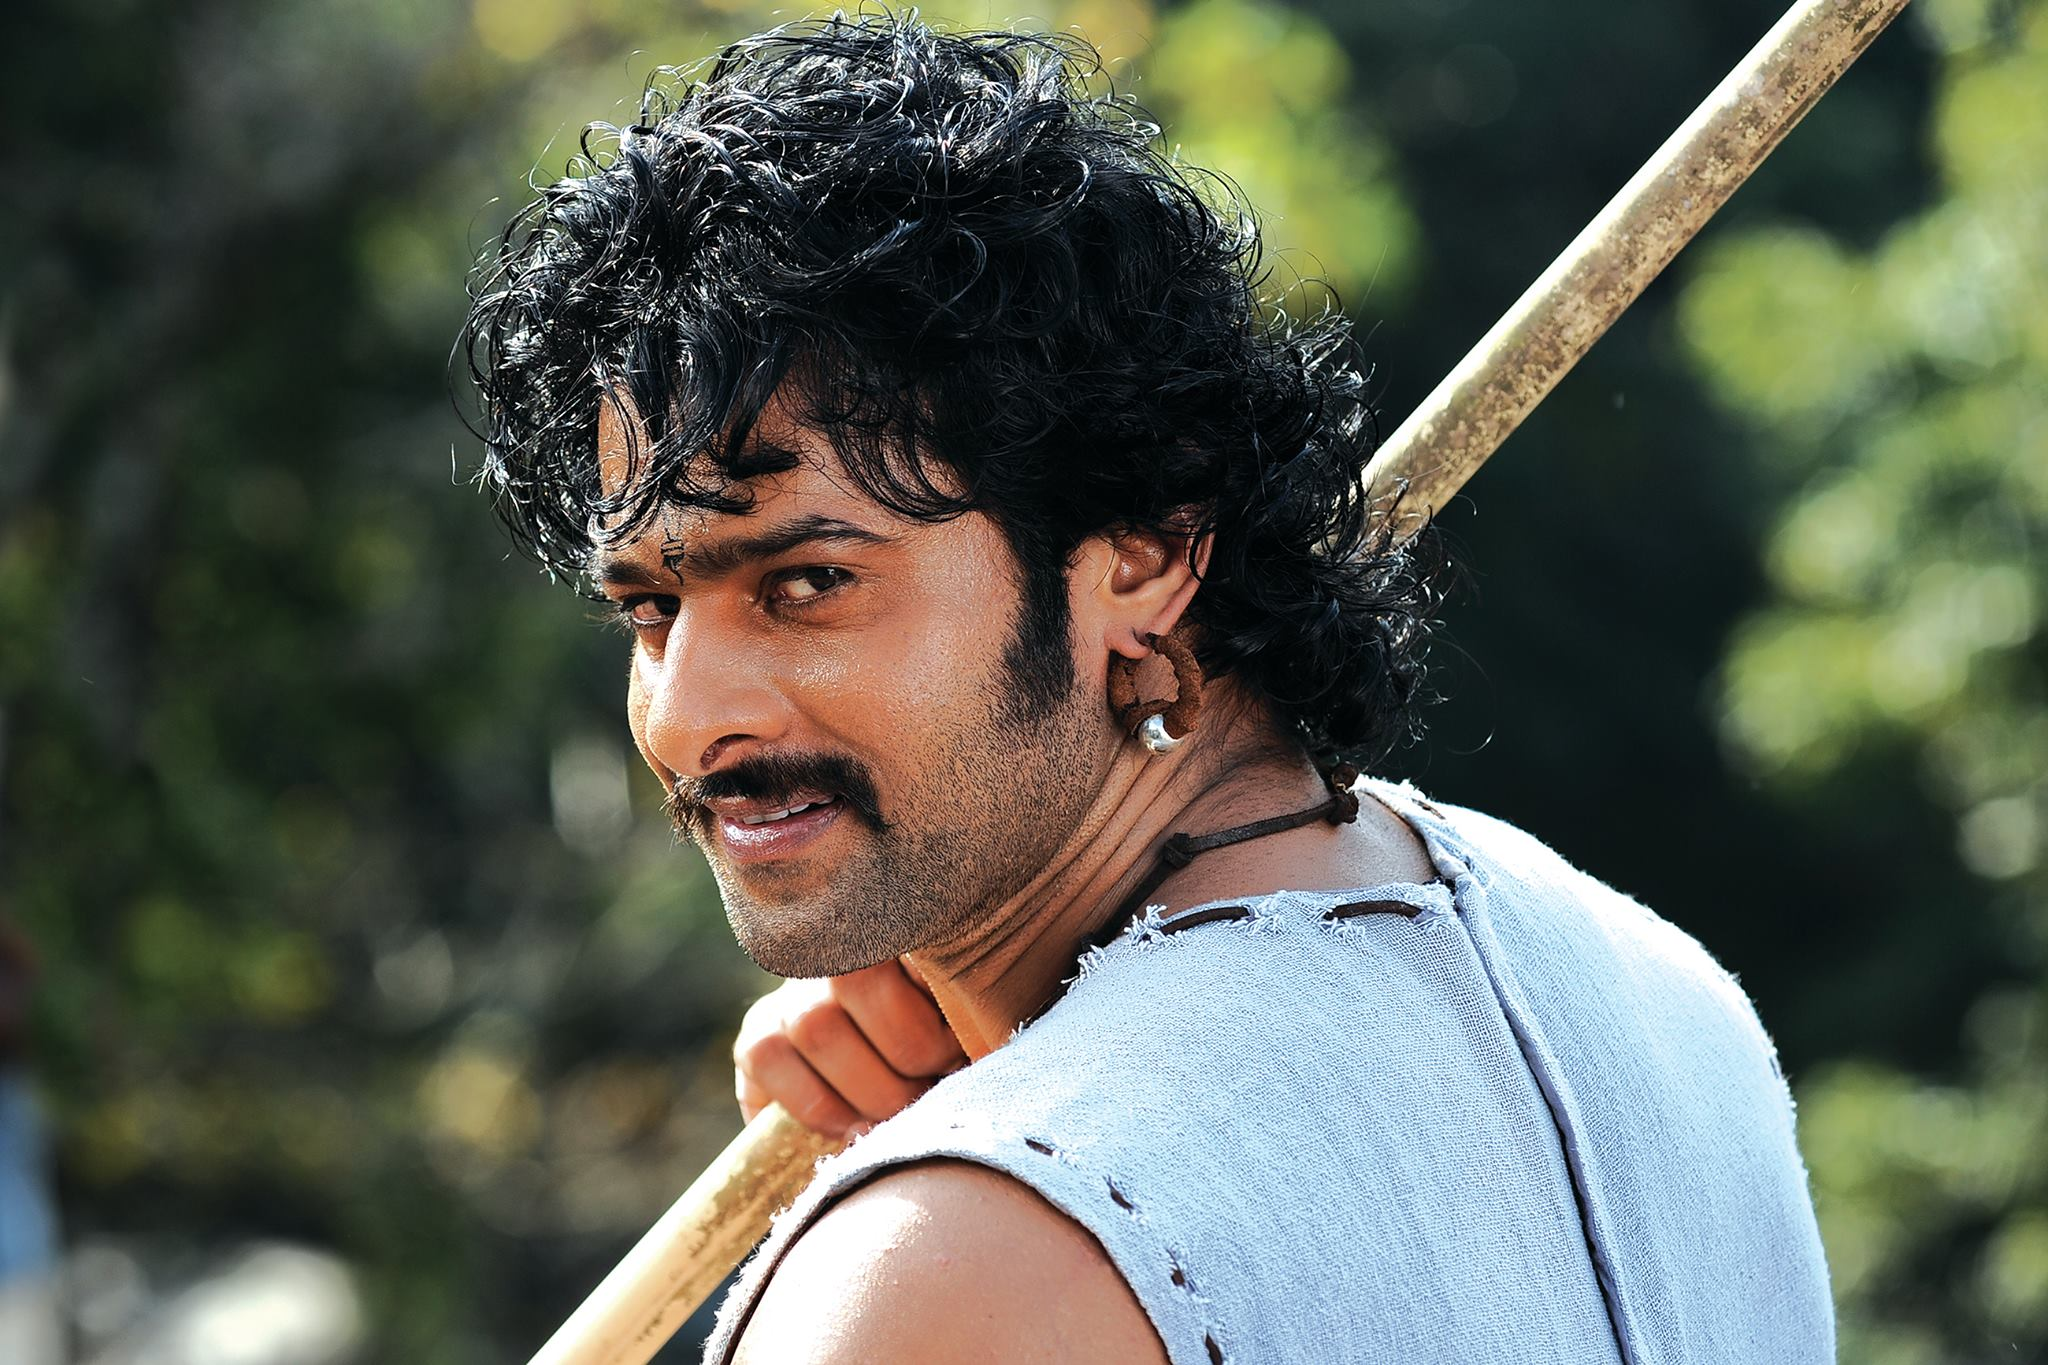 Prabas Wallpaper: Prabhas Latest Full HD Pics Photos Images & Wallpapers